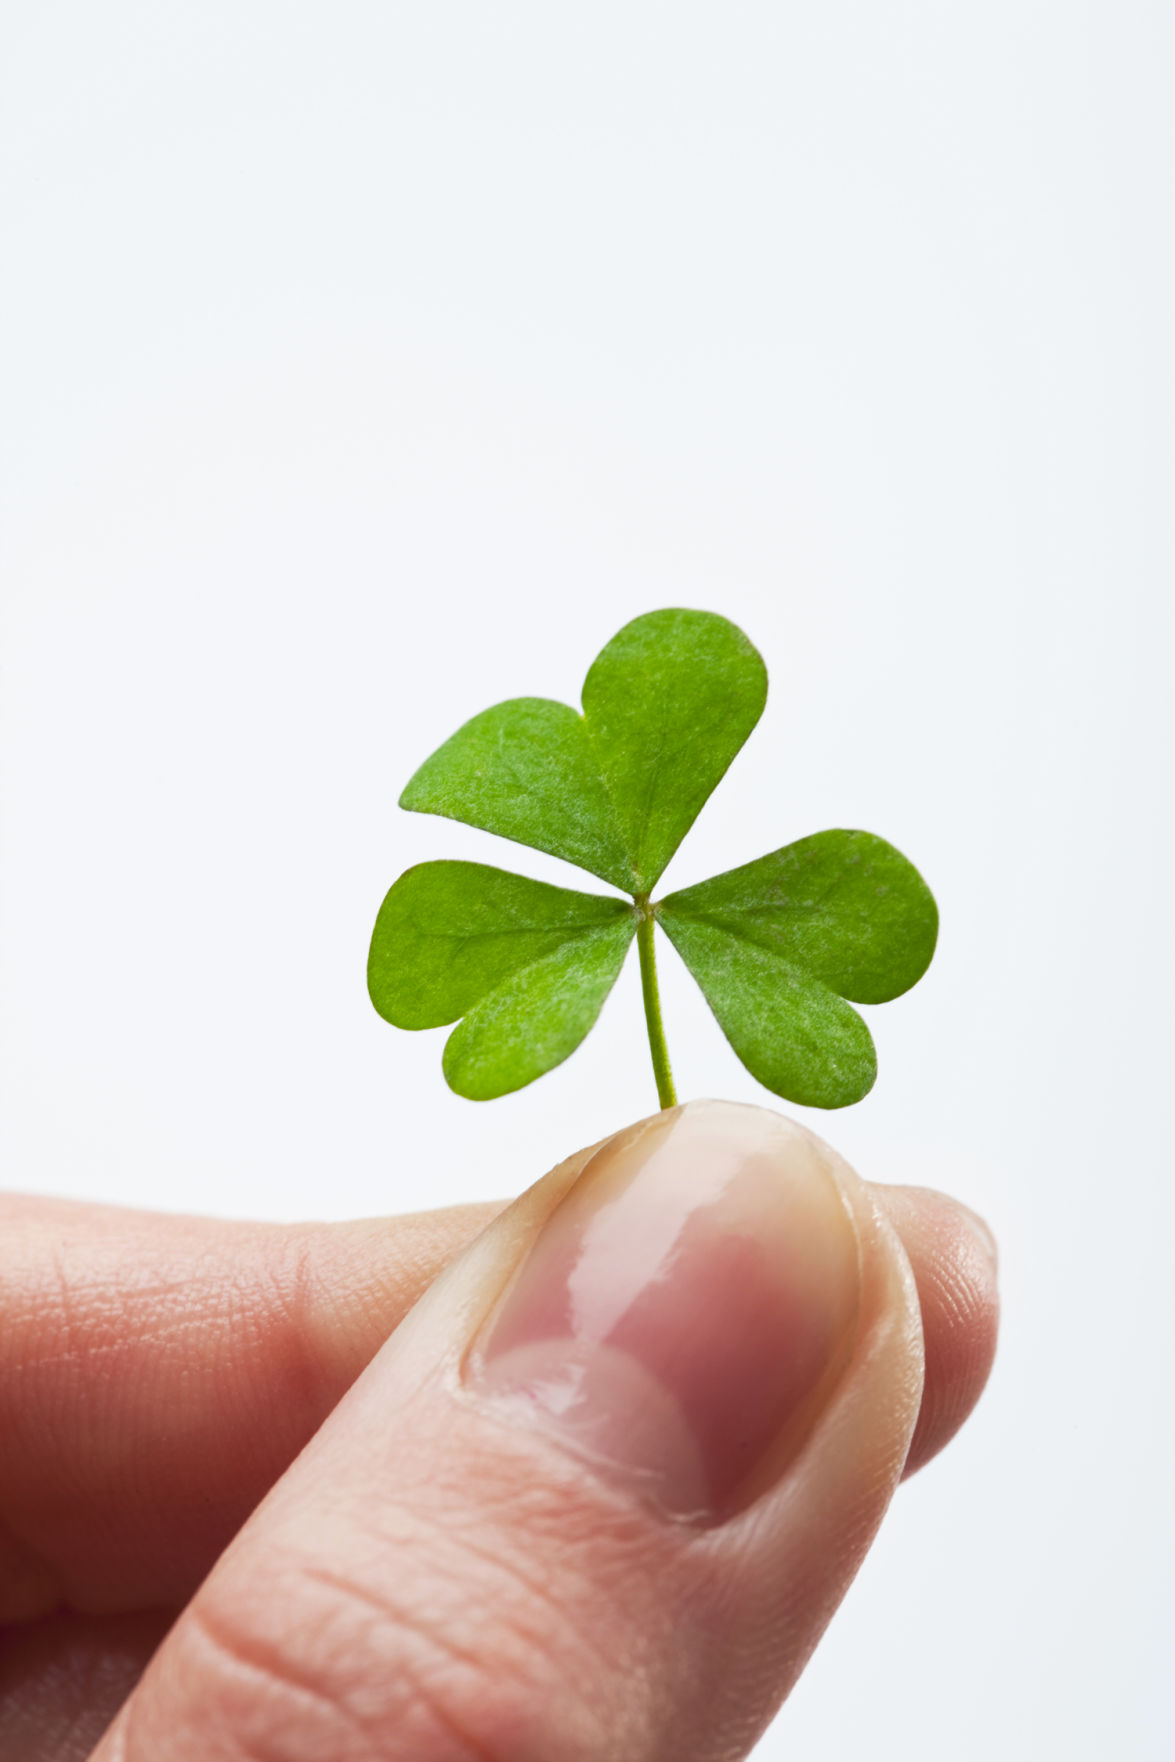 Uncategorized Legend Of The Shamrock luck and legend of the shamrock lifestyles godanriver com shamrock